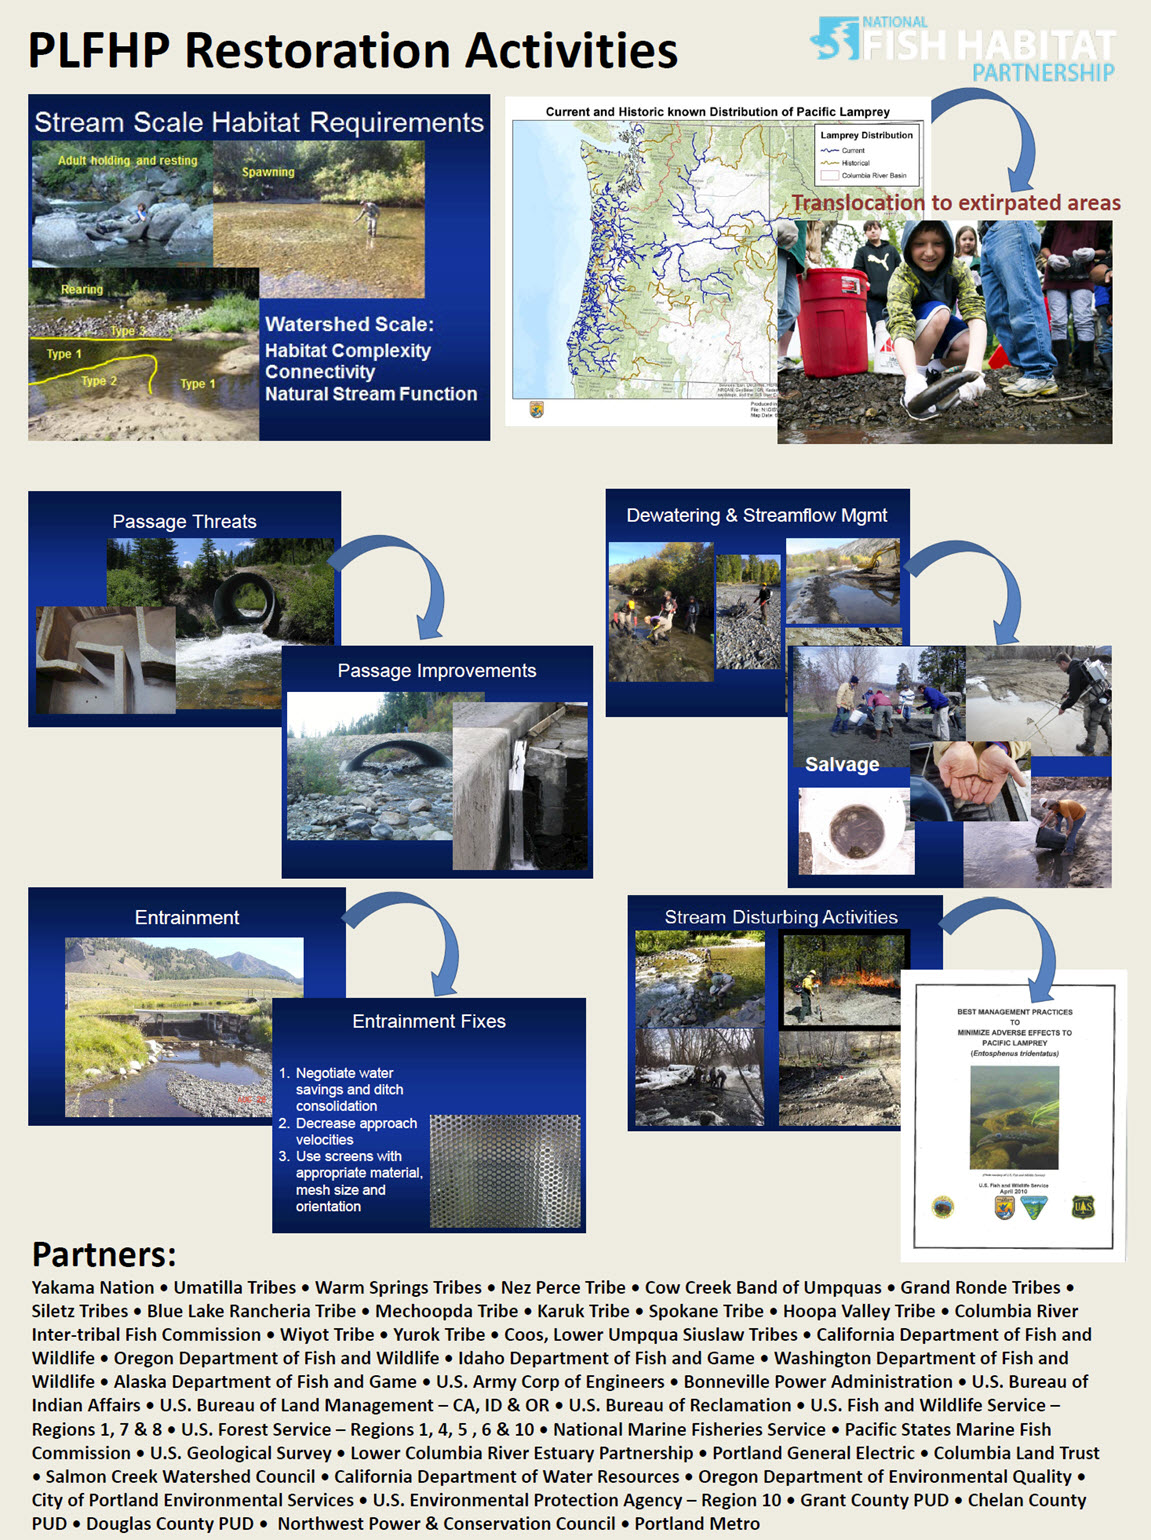 Pacific Lamprey Fish Habitat Partnership (poster 2 of 2)